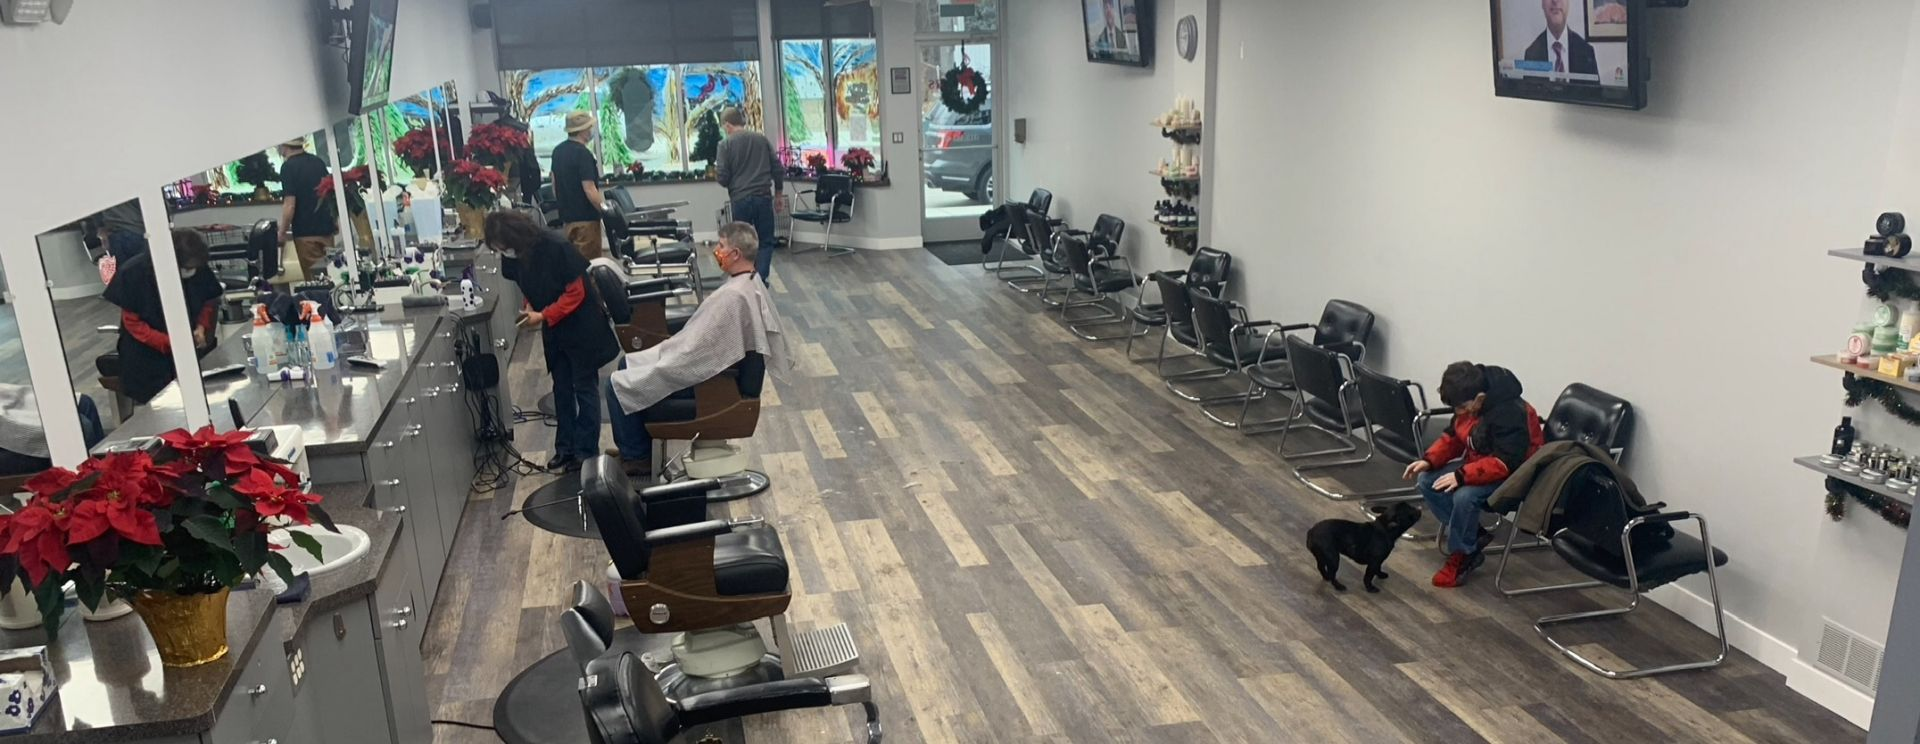 Cherry Hill Barber Shop Main Area with Stylists in Dearborn, Michigan.